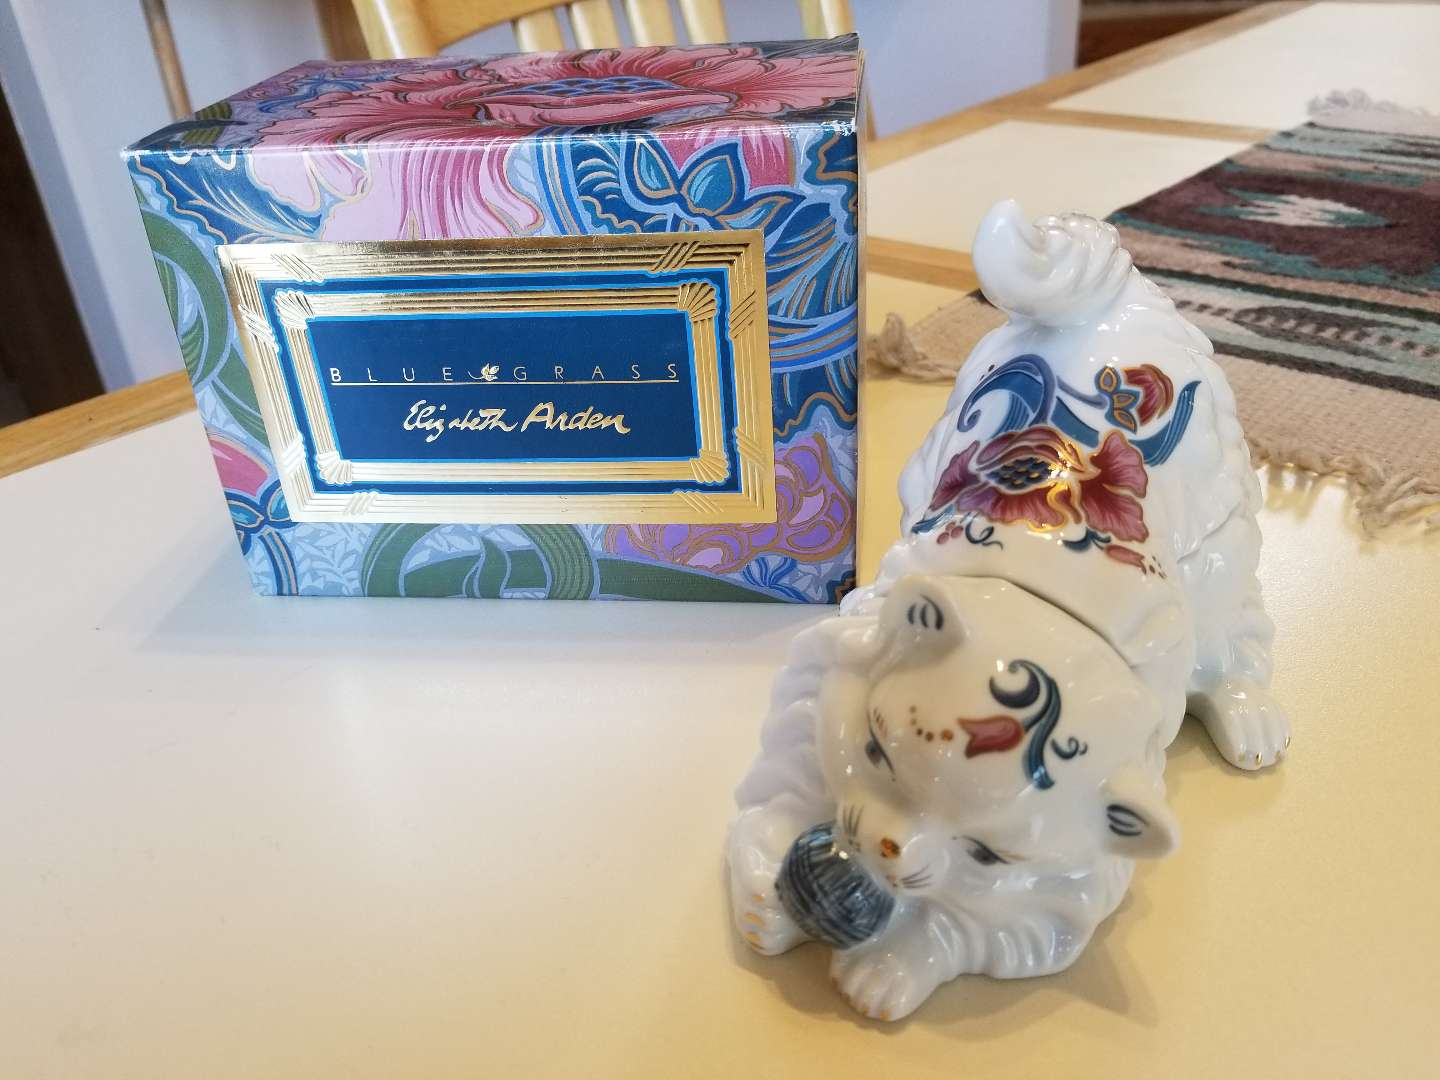 Photo NEVER USED VINTAGE 1980S ELIZABETH ARDEN PERSIAN CAT TRINKET CANDLE BLUE GRASS. PICK UP MIDDLEBORO ONLY